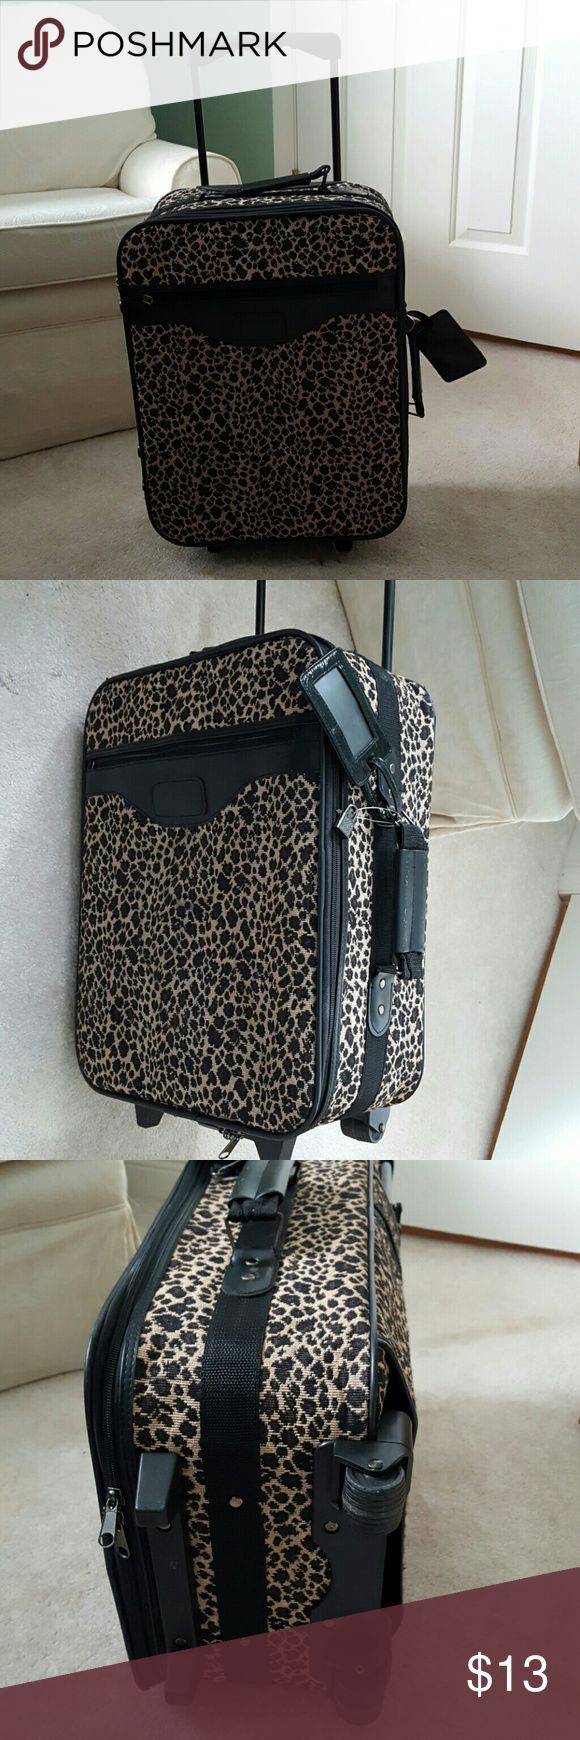 Leopard carry-on suitcase Roll carry-on bag with name tag and keys Bags Travel Bags